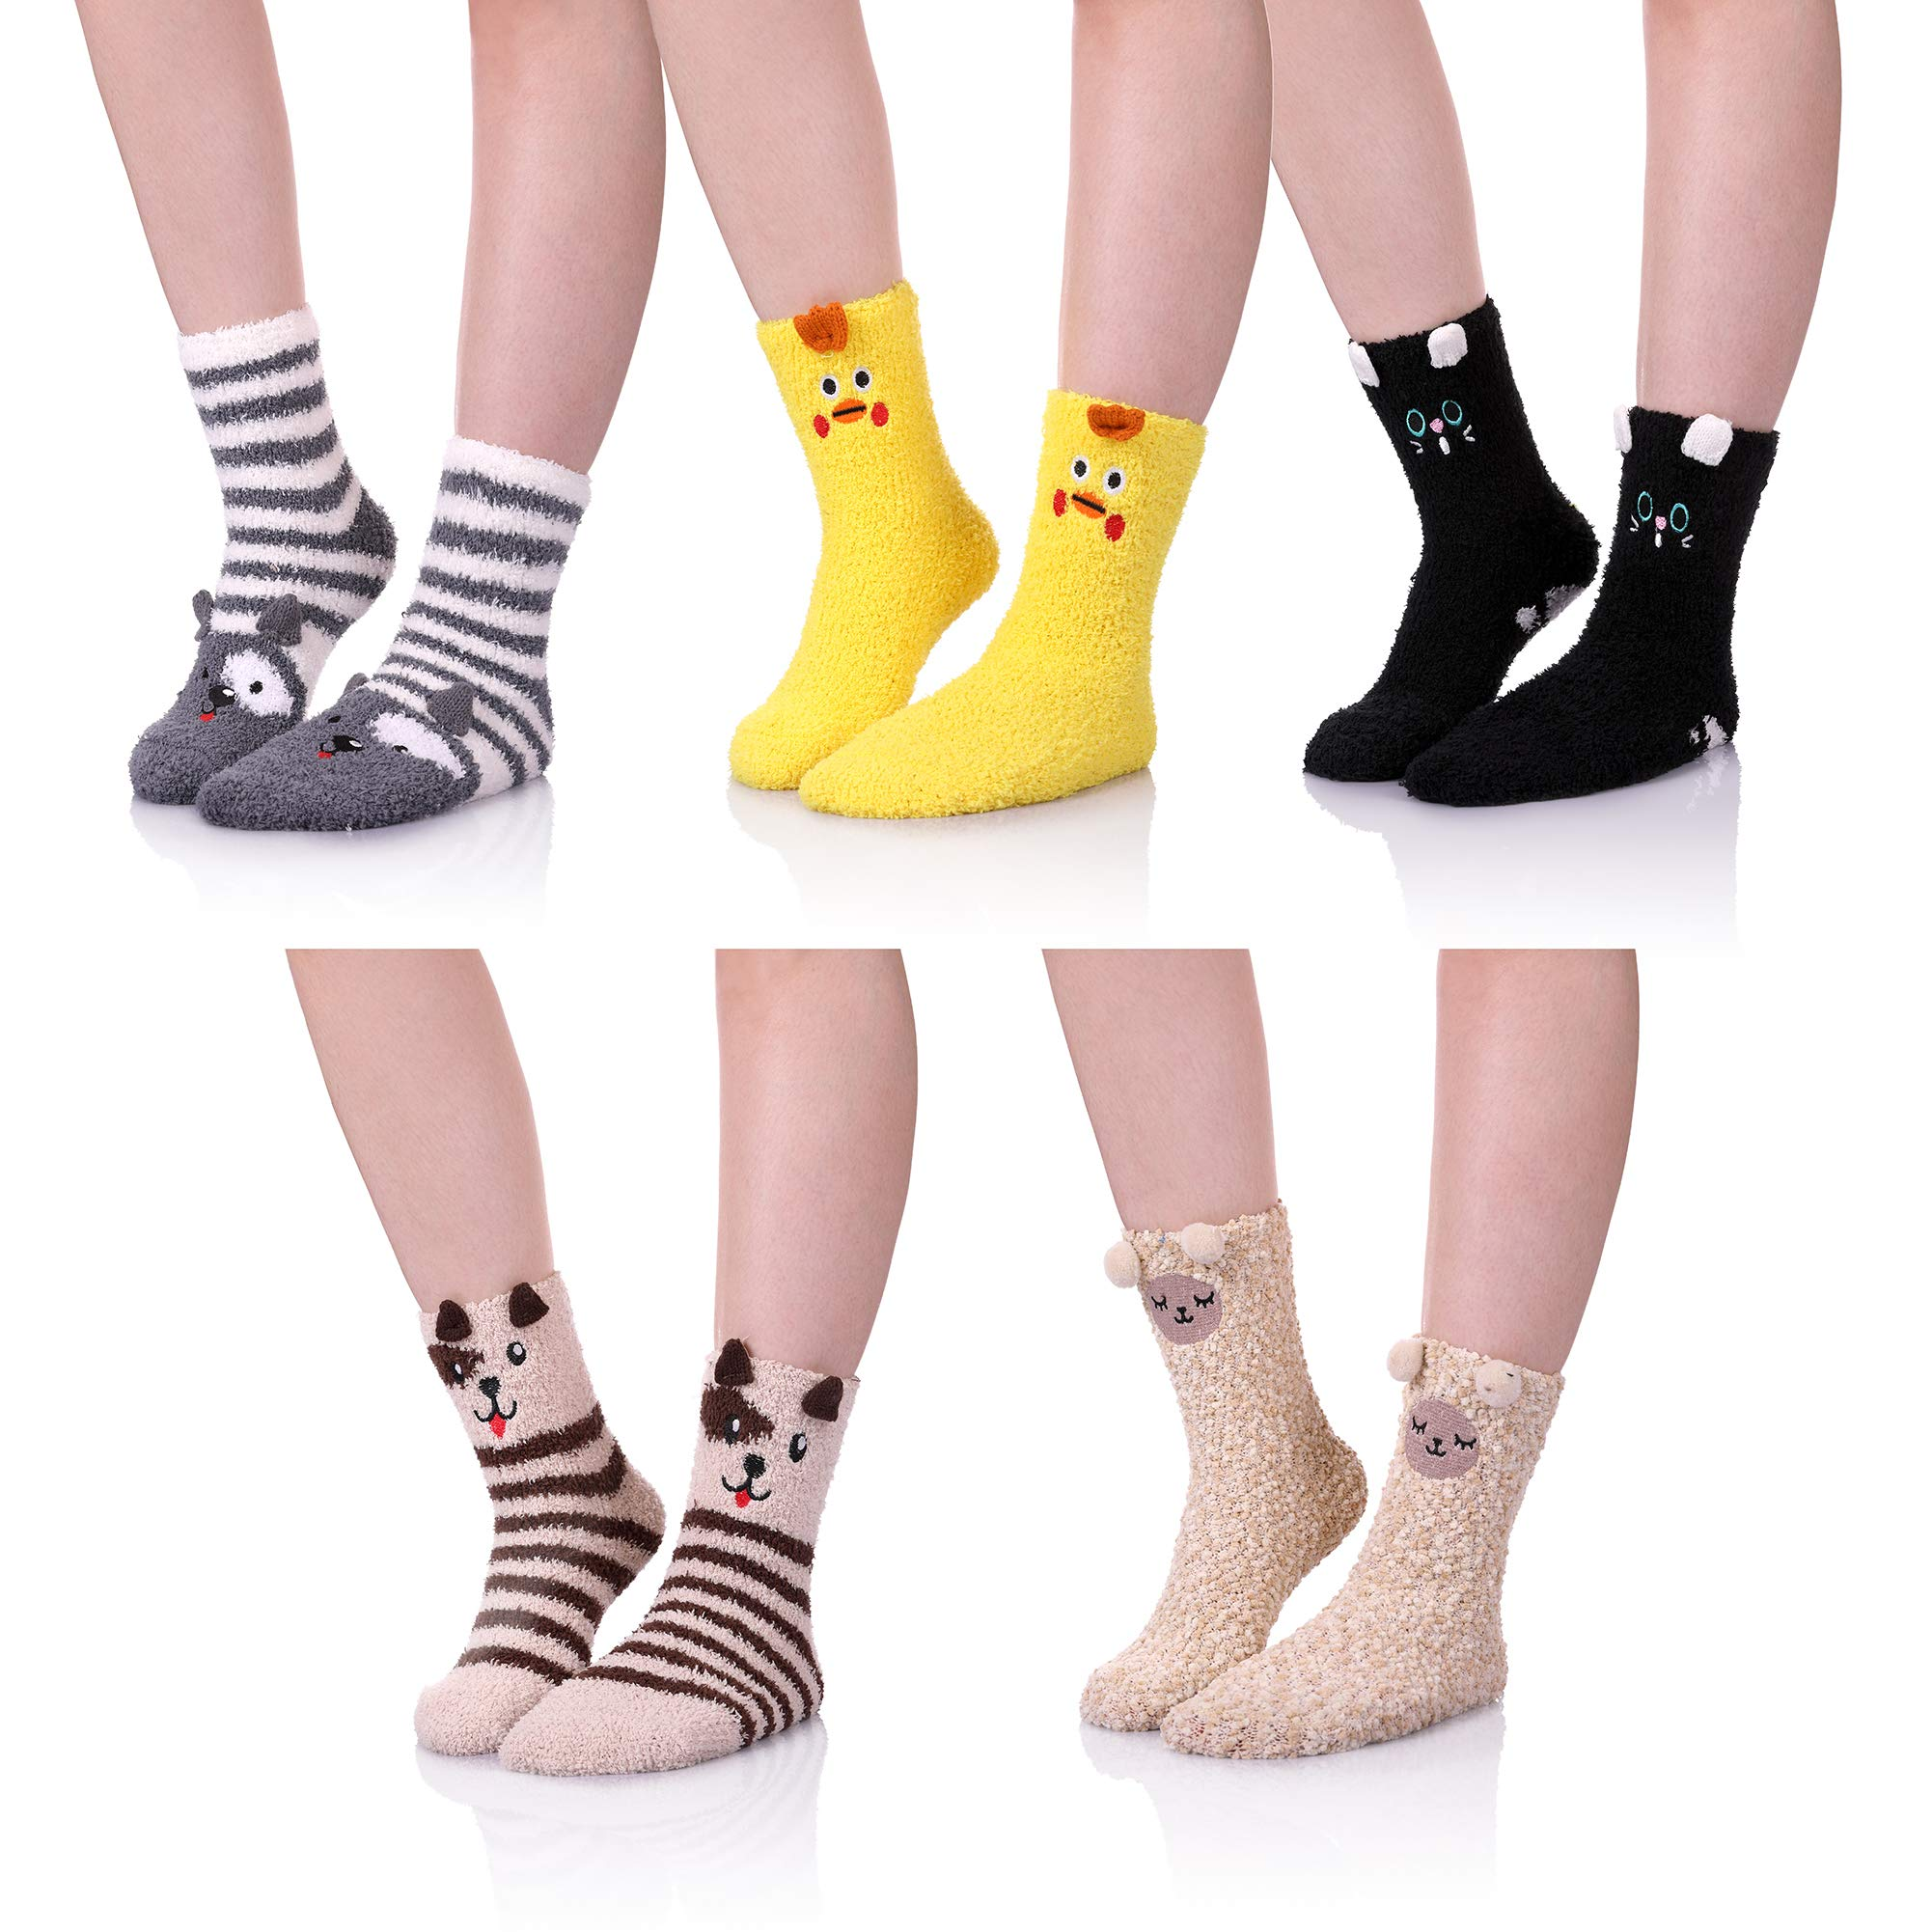 ZaYang 5 Pack Womens Girls Cute Animal Soft Fuzzy Warm Winter Sleeping Slipper Socks Value Pack (Animal A)